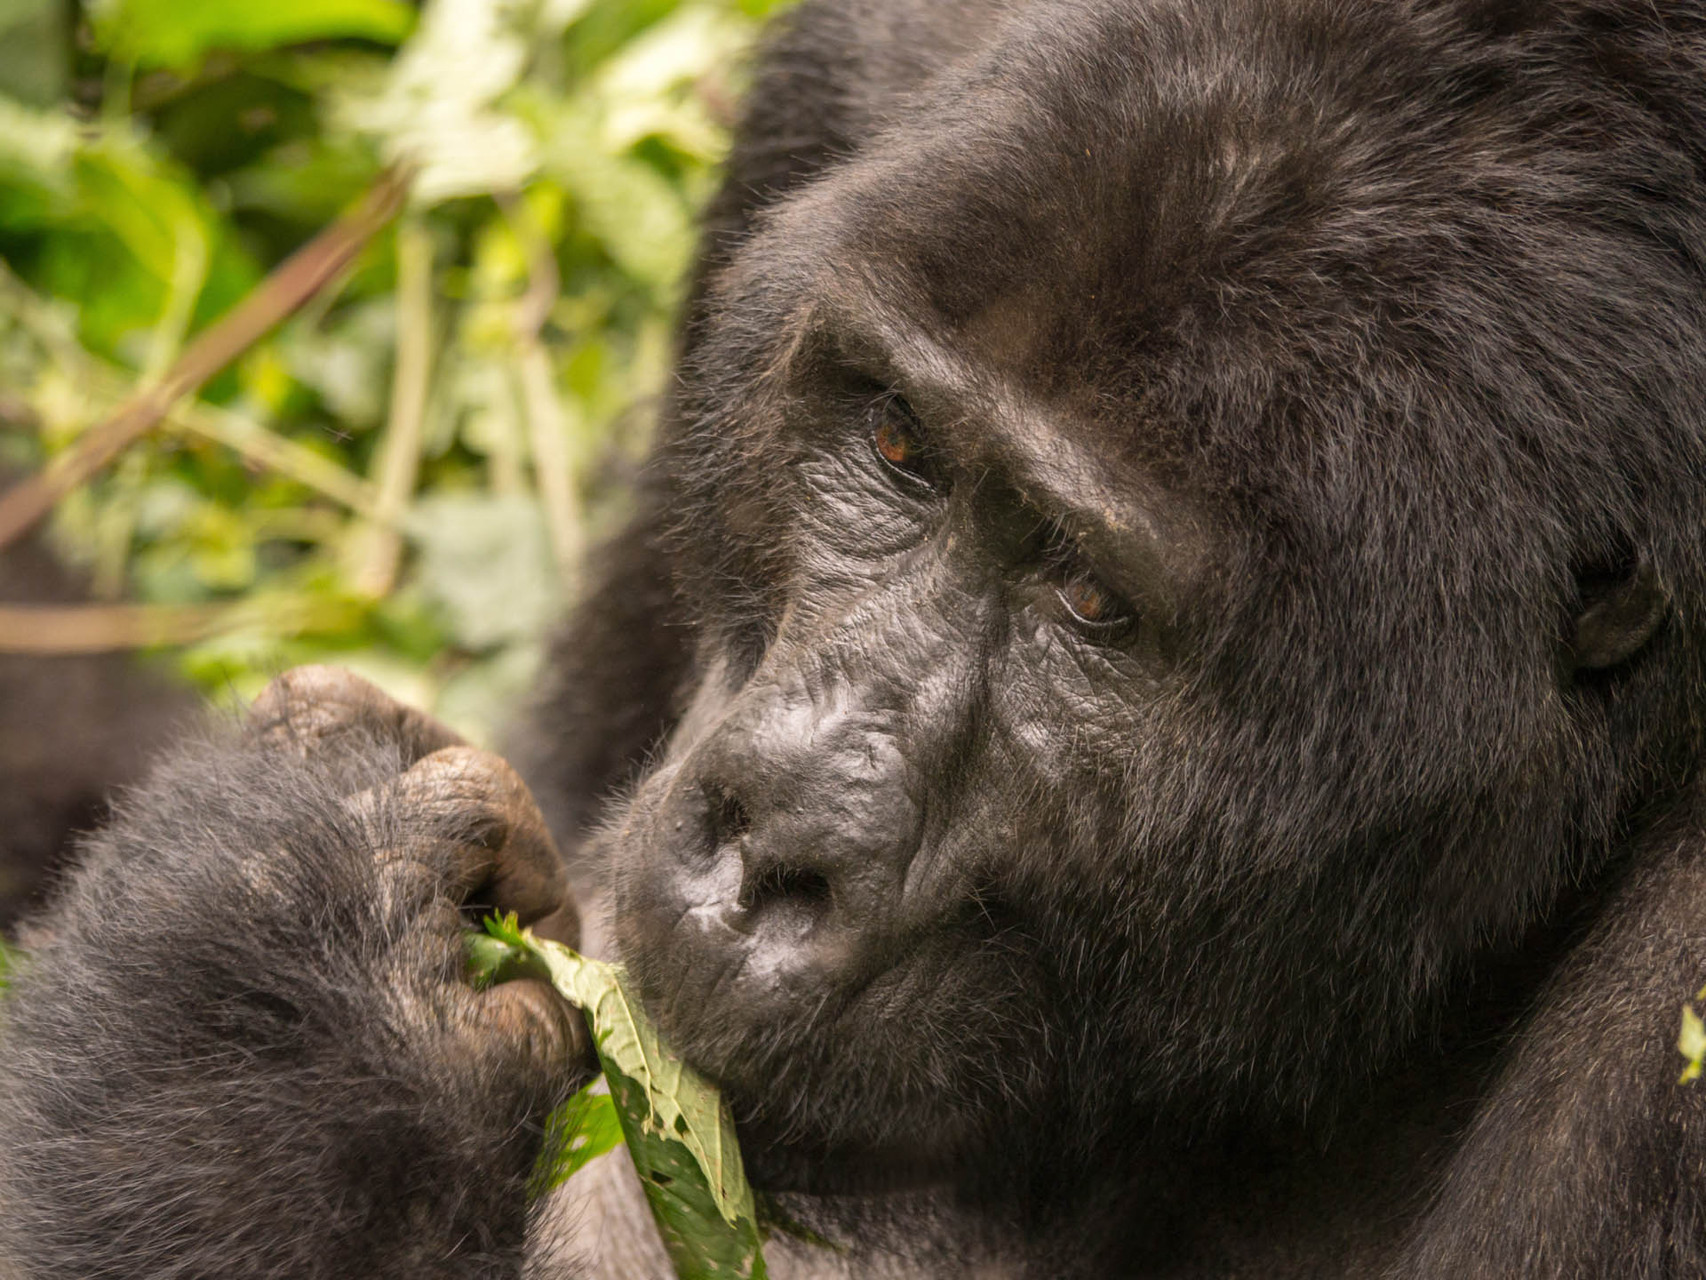 Mountain gorillas, Bwindi Impenetrable National park, Uganda